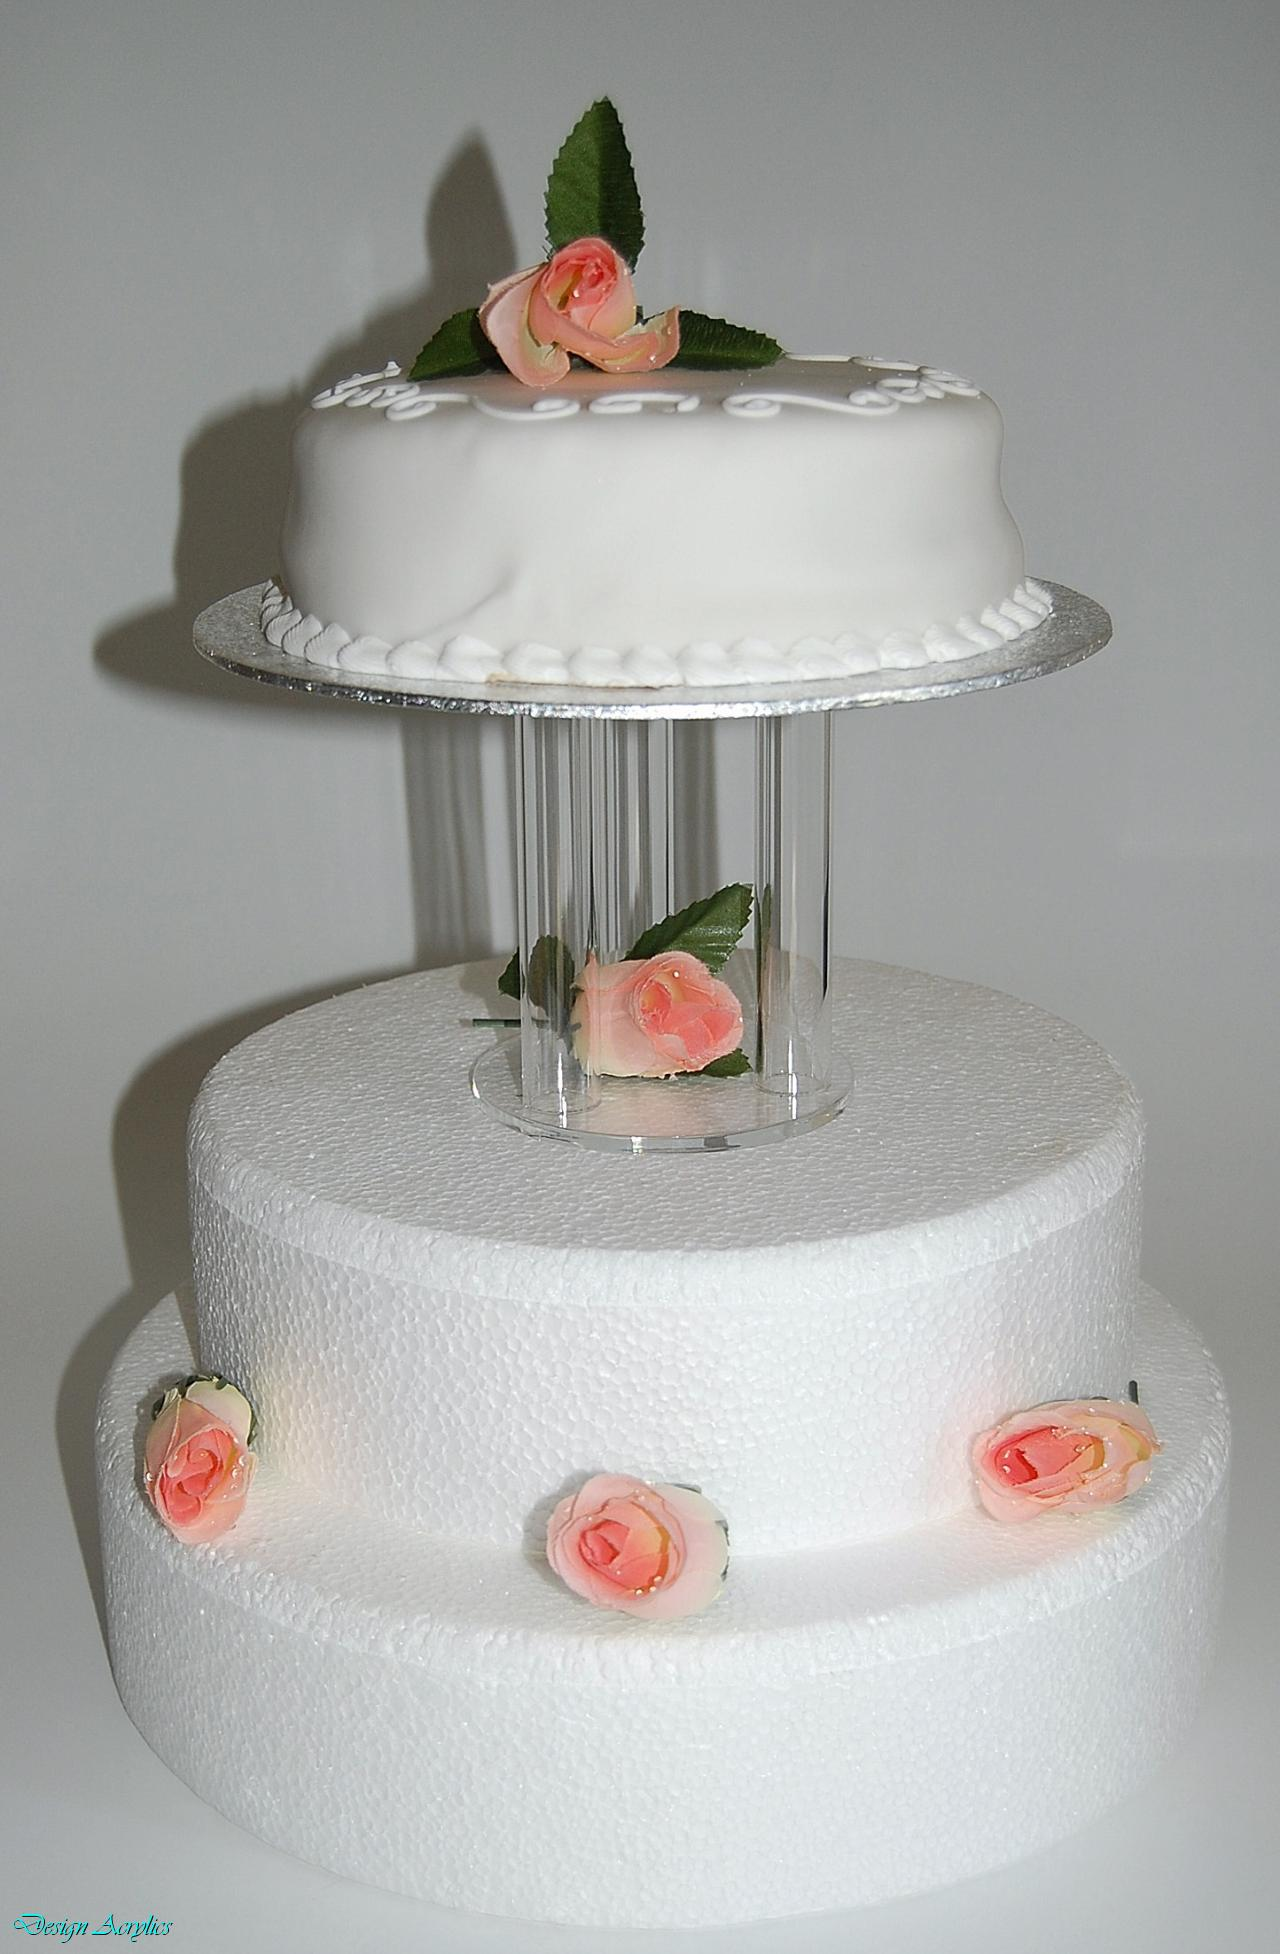 CLEAR MINI ACRYLIC CAGE SEPARATOR WEDDING CAKE STAND 5